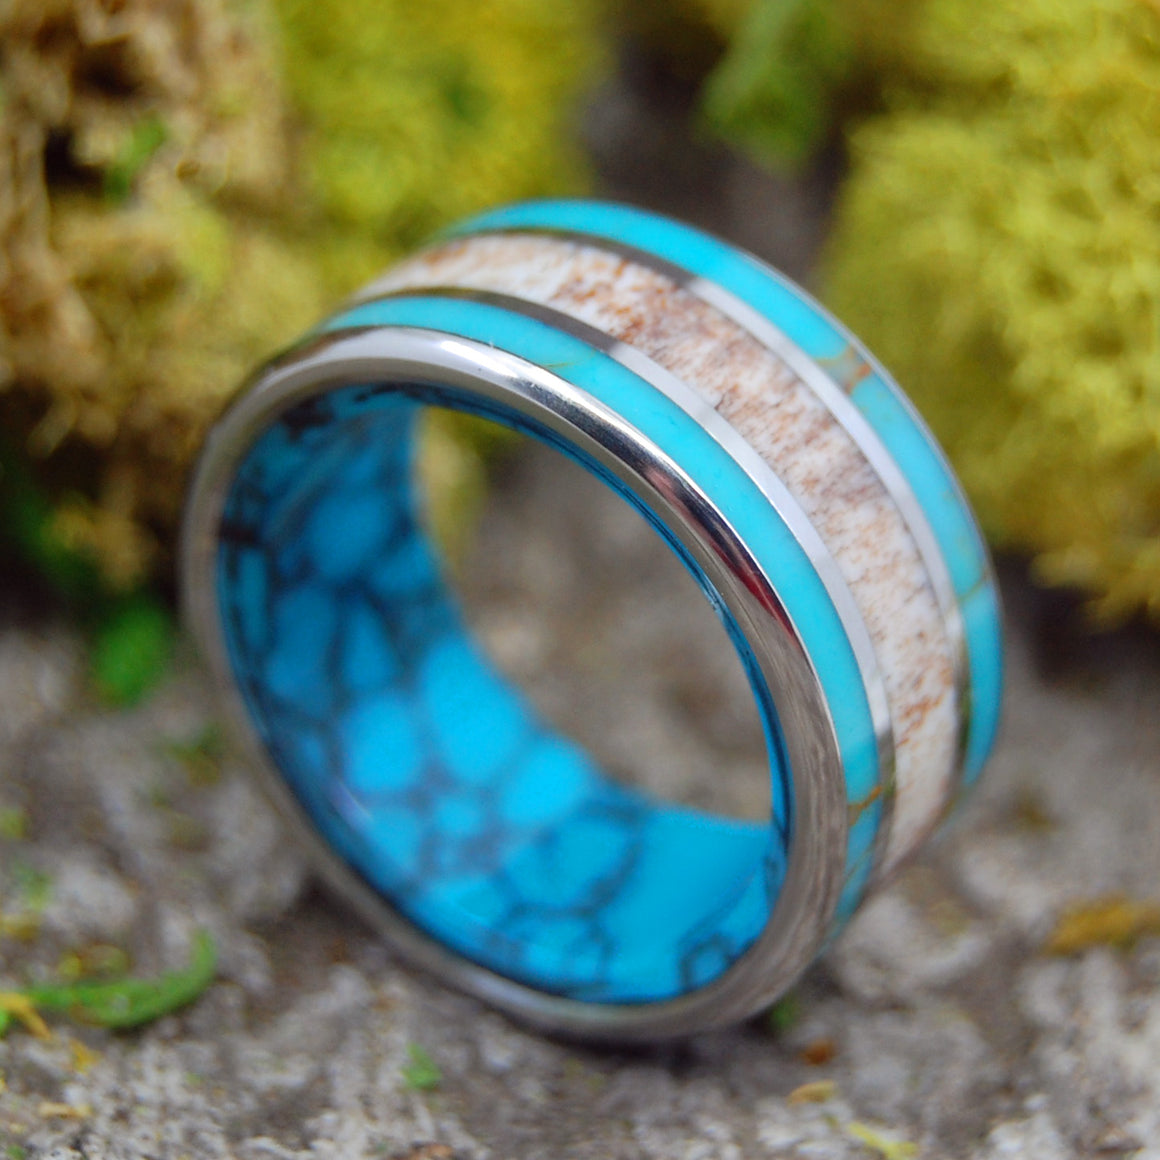 Moose Antler Wedding Ring - Mens Ring | MOOSE IN THE SEA OFF MAINE